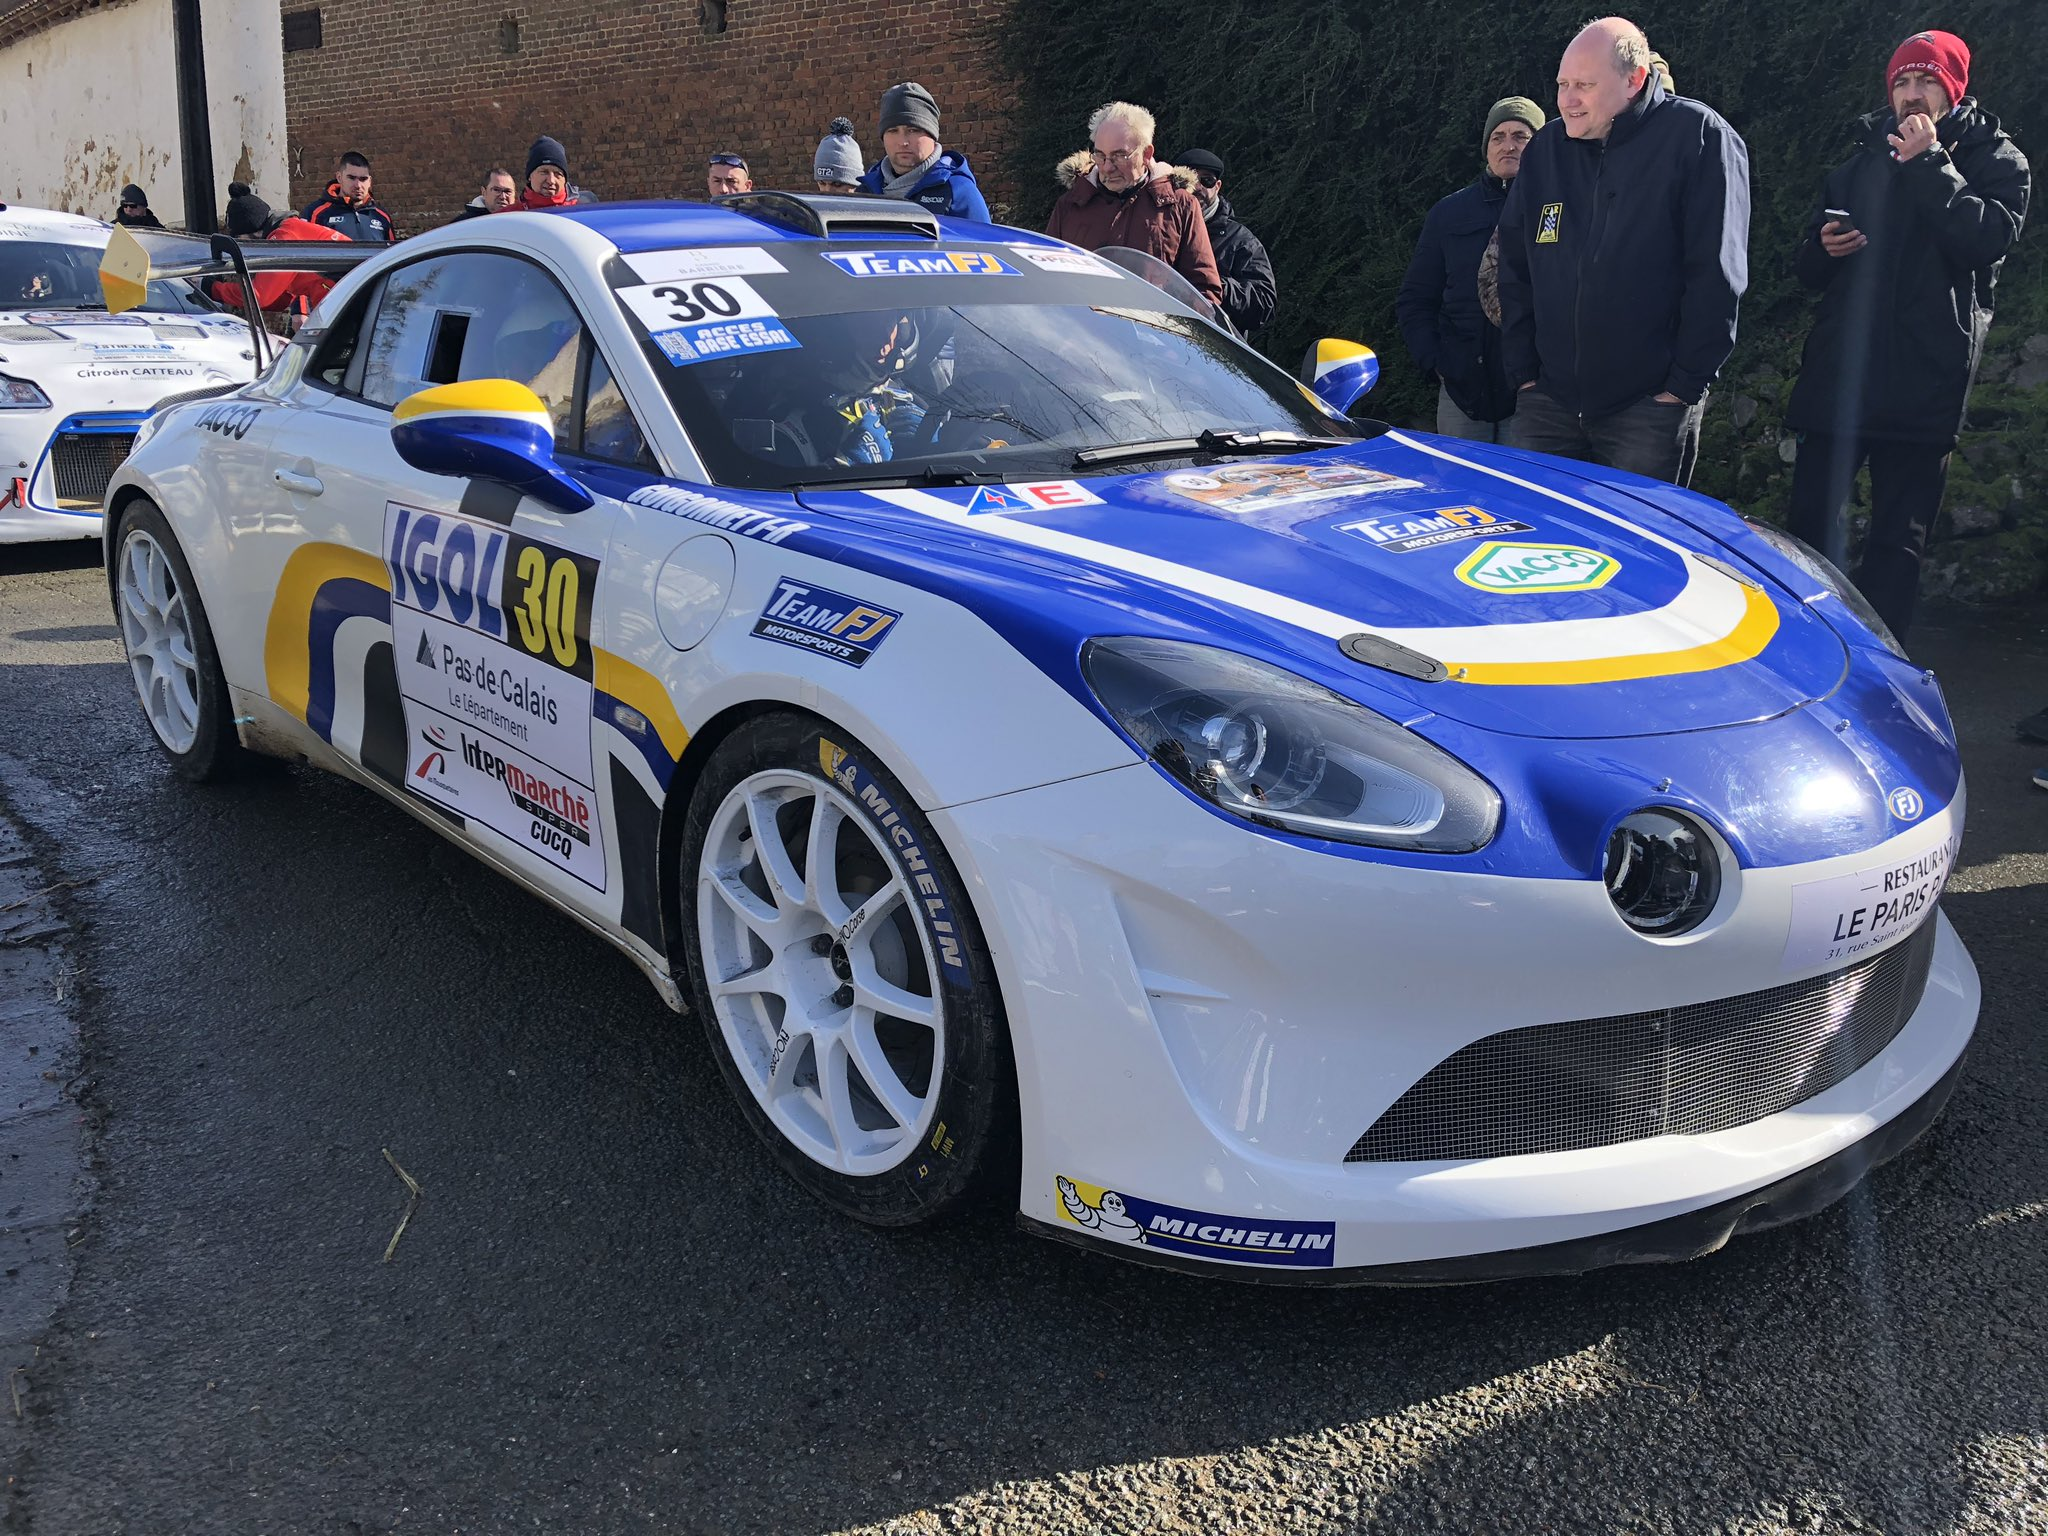 Alpine A110 R GT team FJ v 5